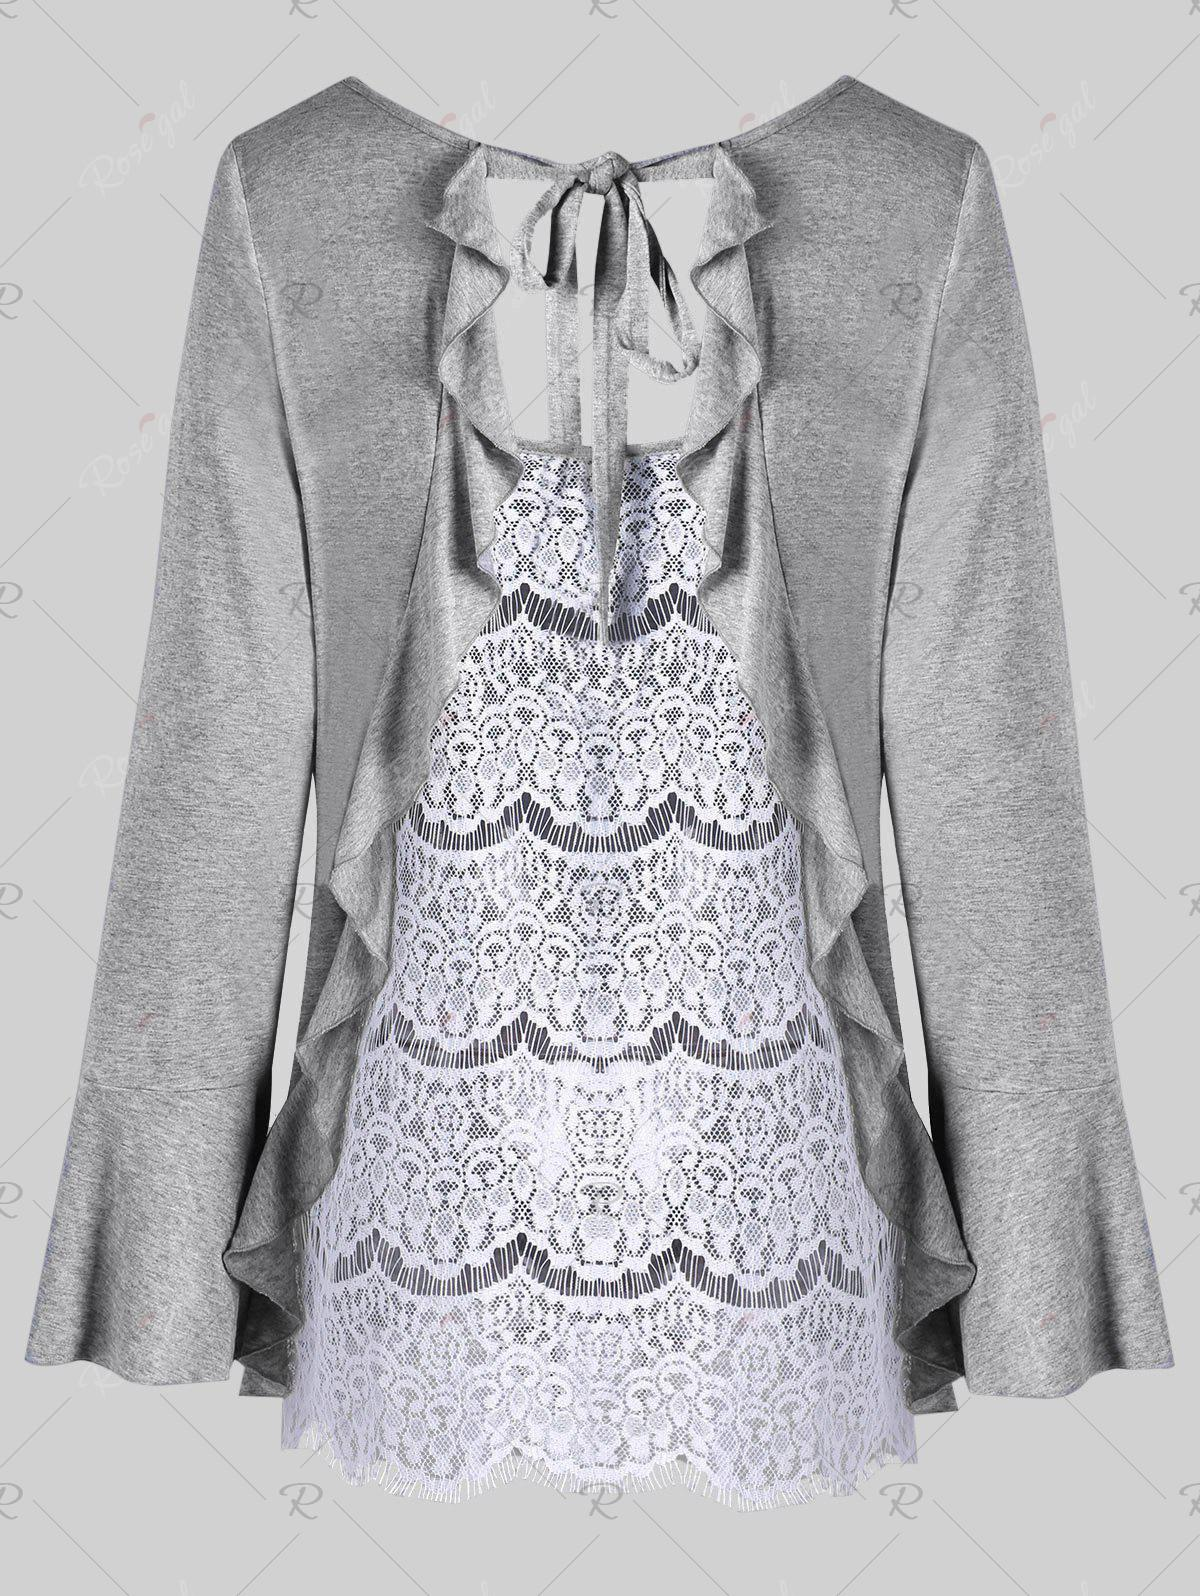 Plus Size Flounced Lace Back TopWOMEN<br><br>Size: 4XL; Color: LIGHT GREY; Material: Rayon,Spandex; Shirt Length: Long; Sleeve Length: Full; Collar: Scoop Neck; Style: Casual; Season: Fall,Spring; Embellishment: Lace; Pattern Type: Others; Weight: 0.3300kg; Package Contents: 1 x Top;